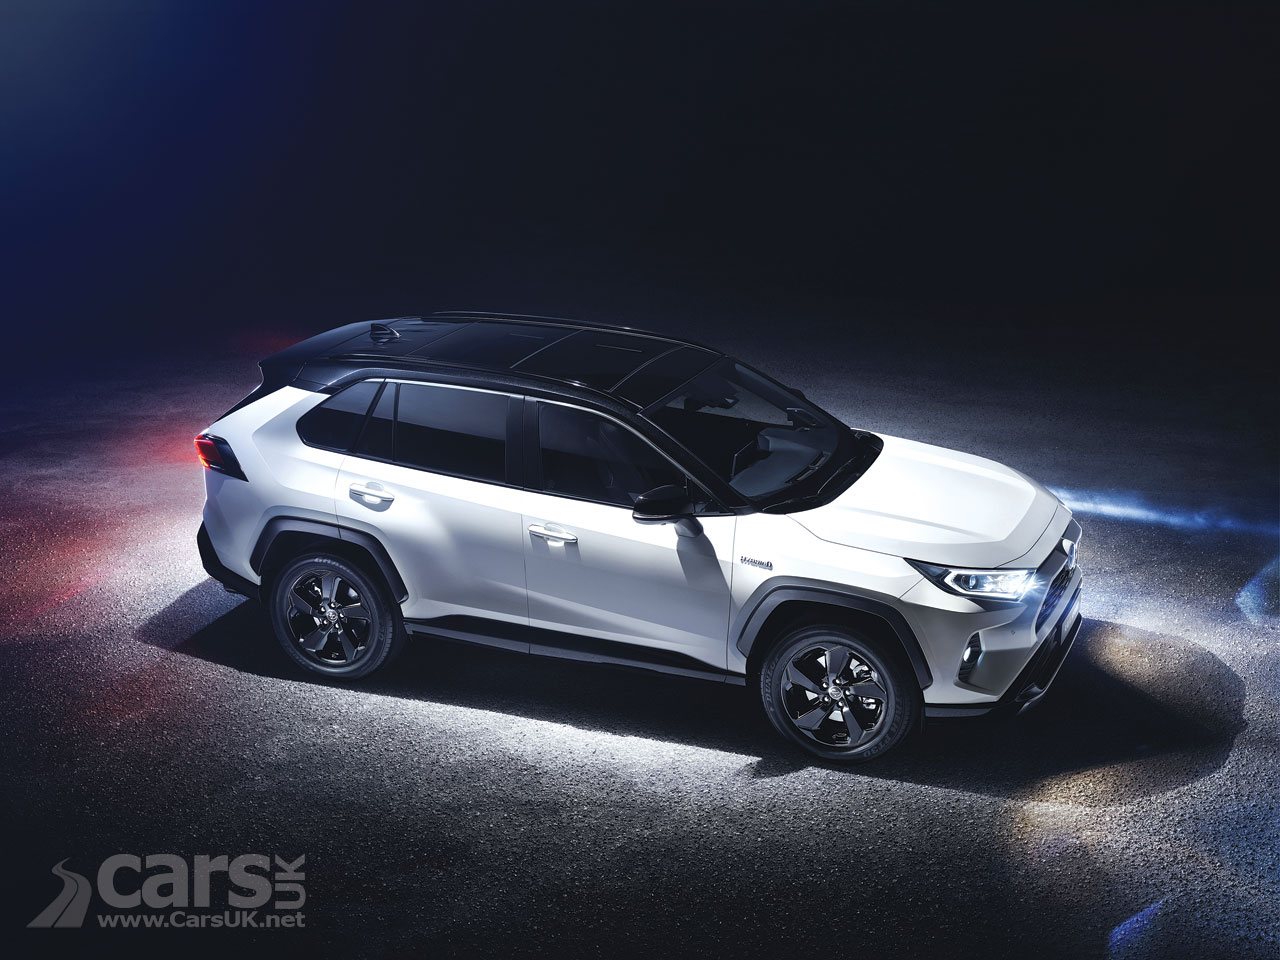 Lexus Suv Hybrid >> New Toyota RAV4 REVEALED - heading for the UK in 2019 | Cars UK